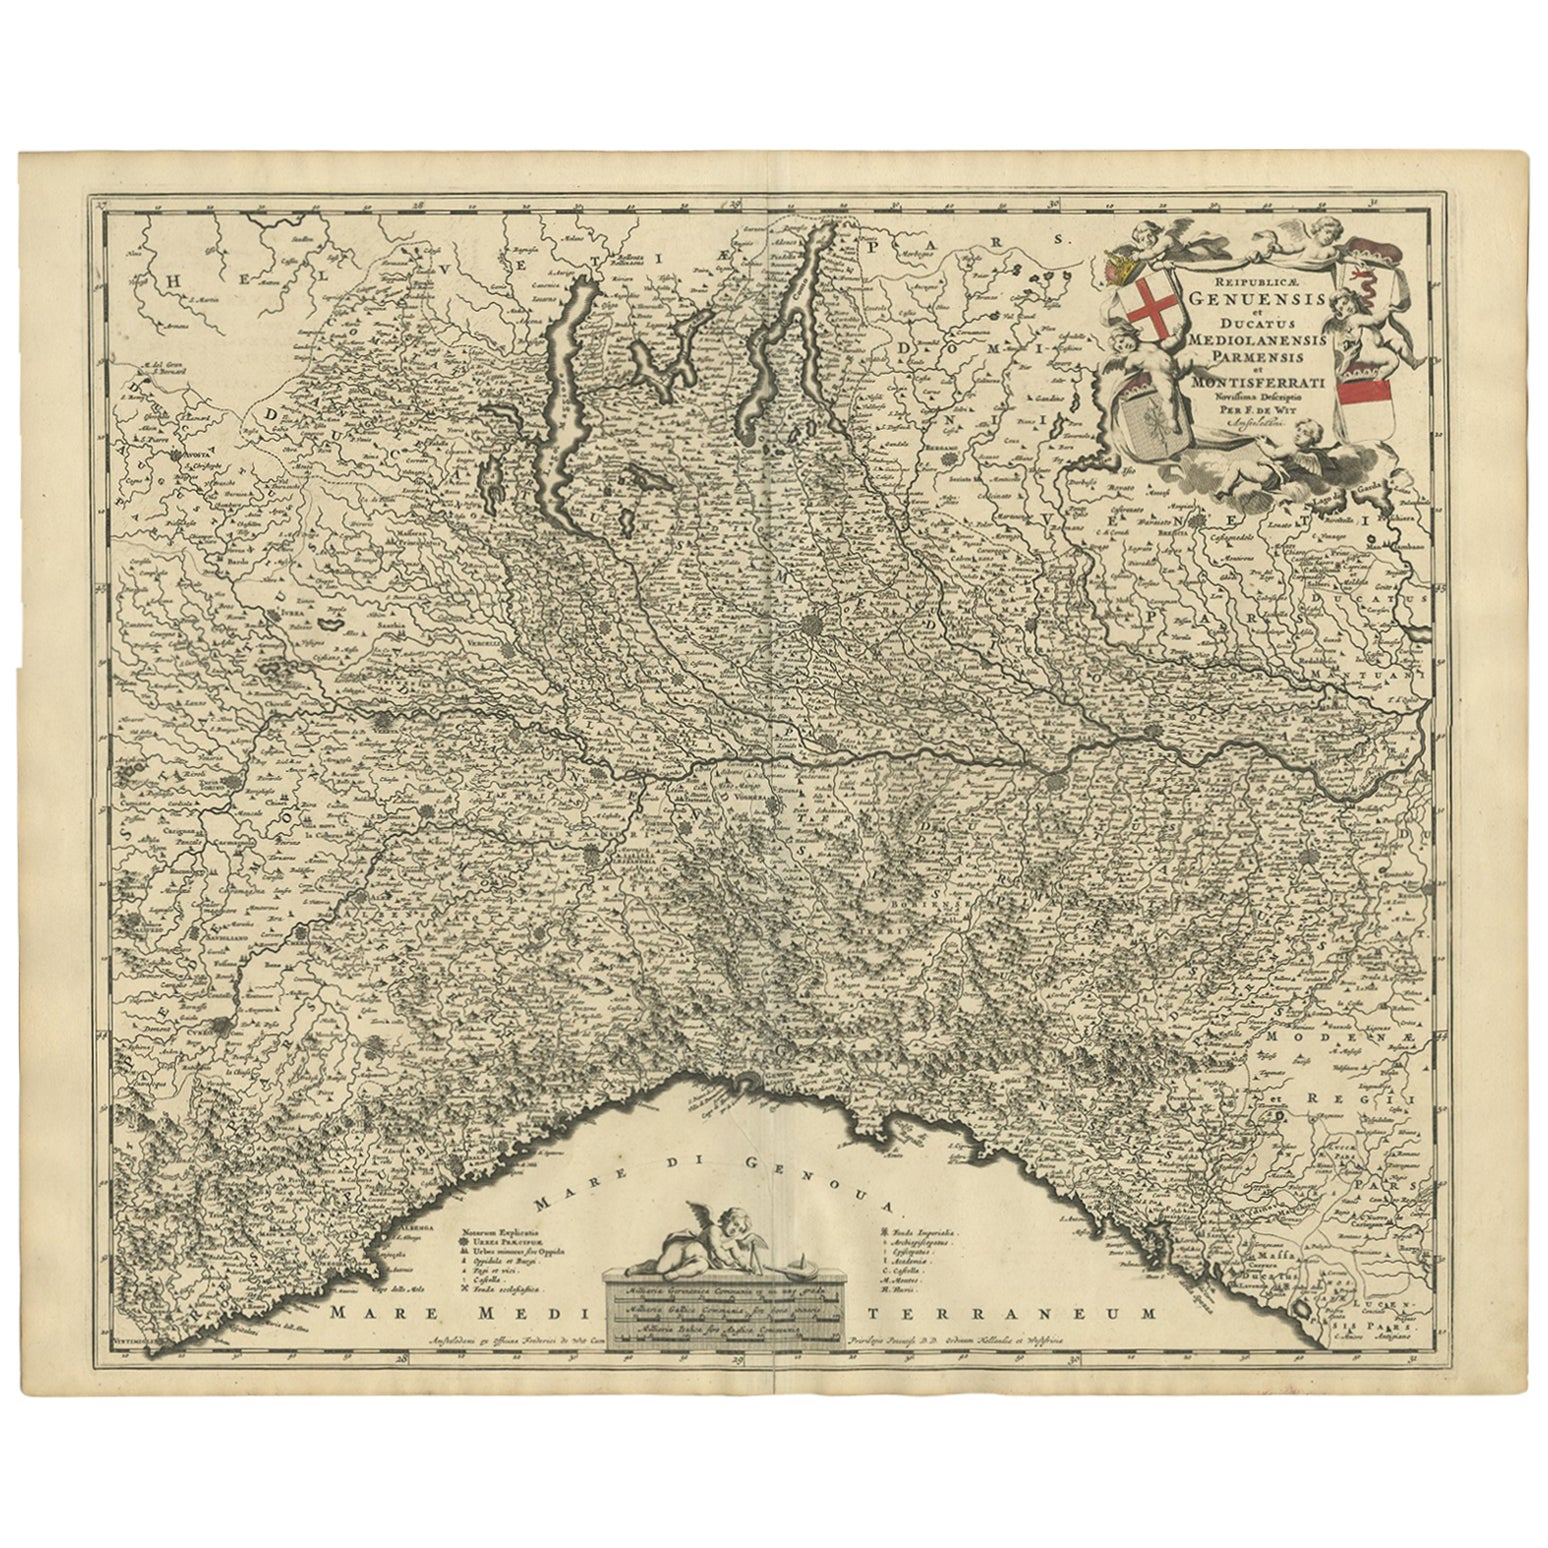 Antique Map of Northern Italy by F. de Wit, 1690